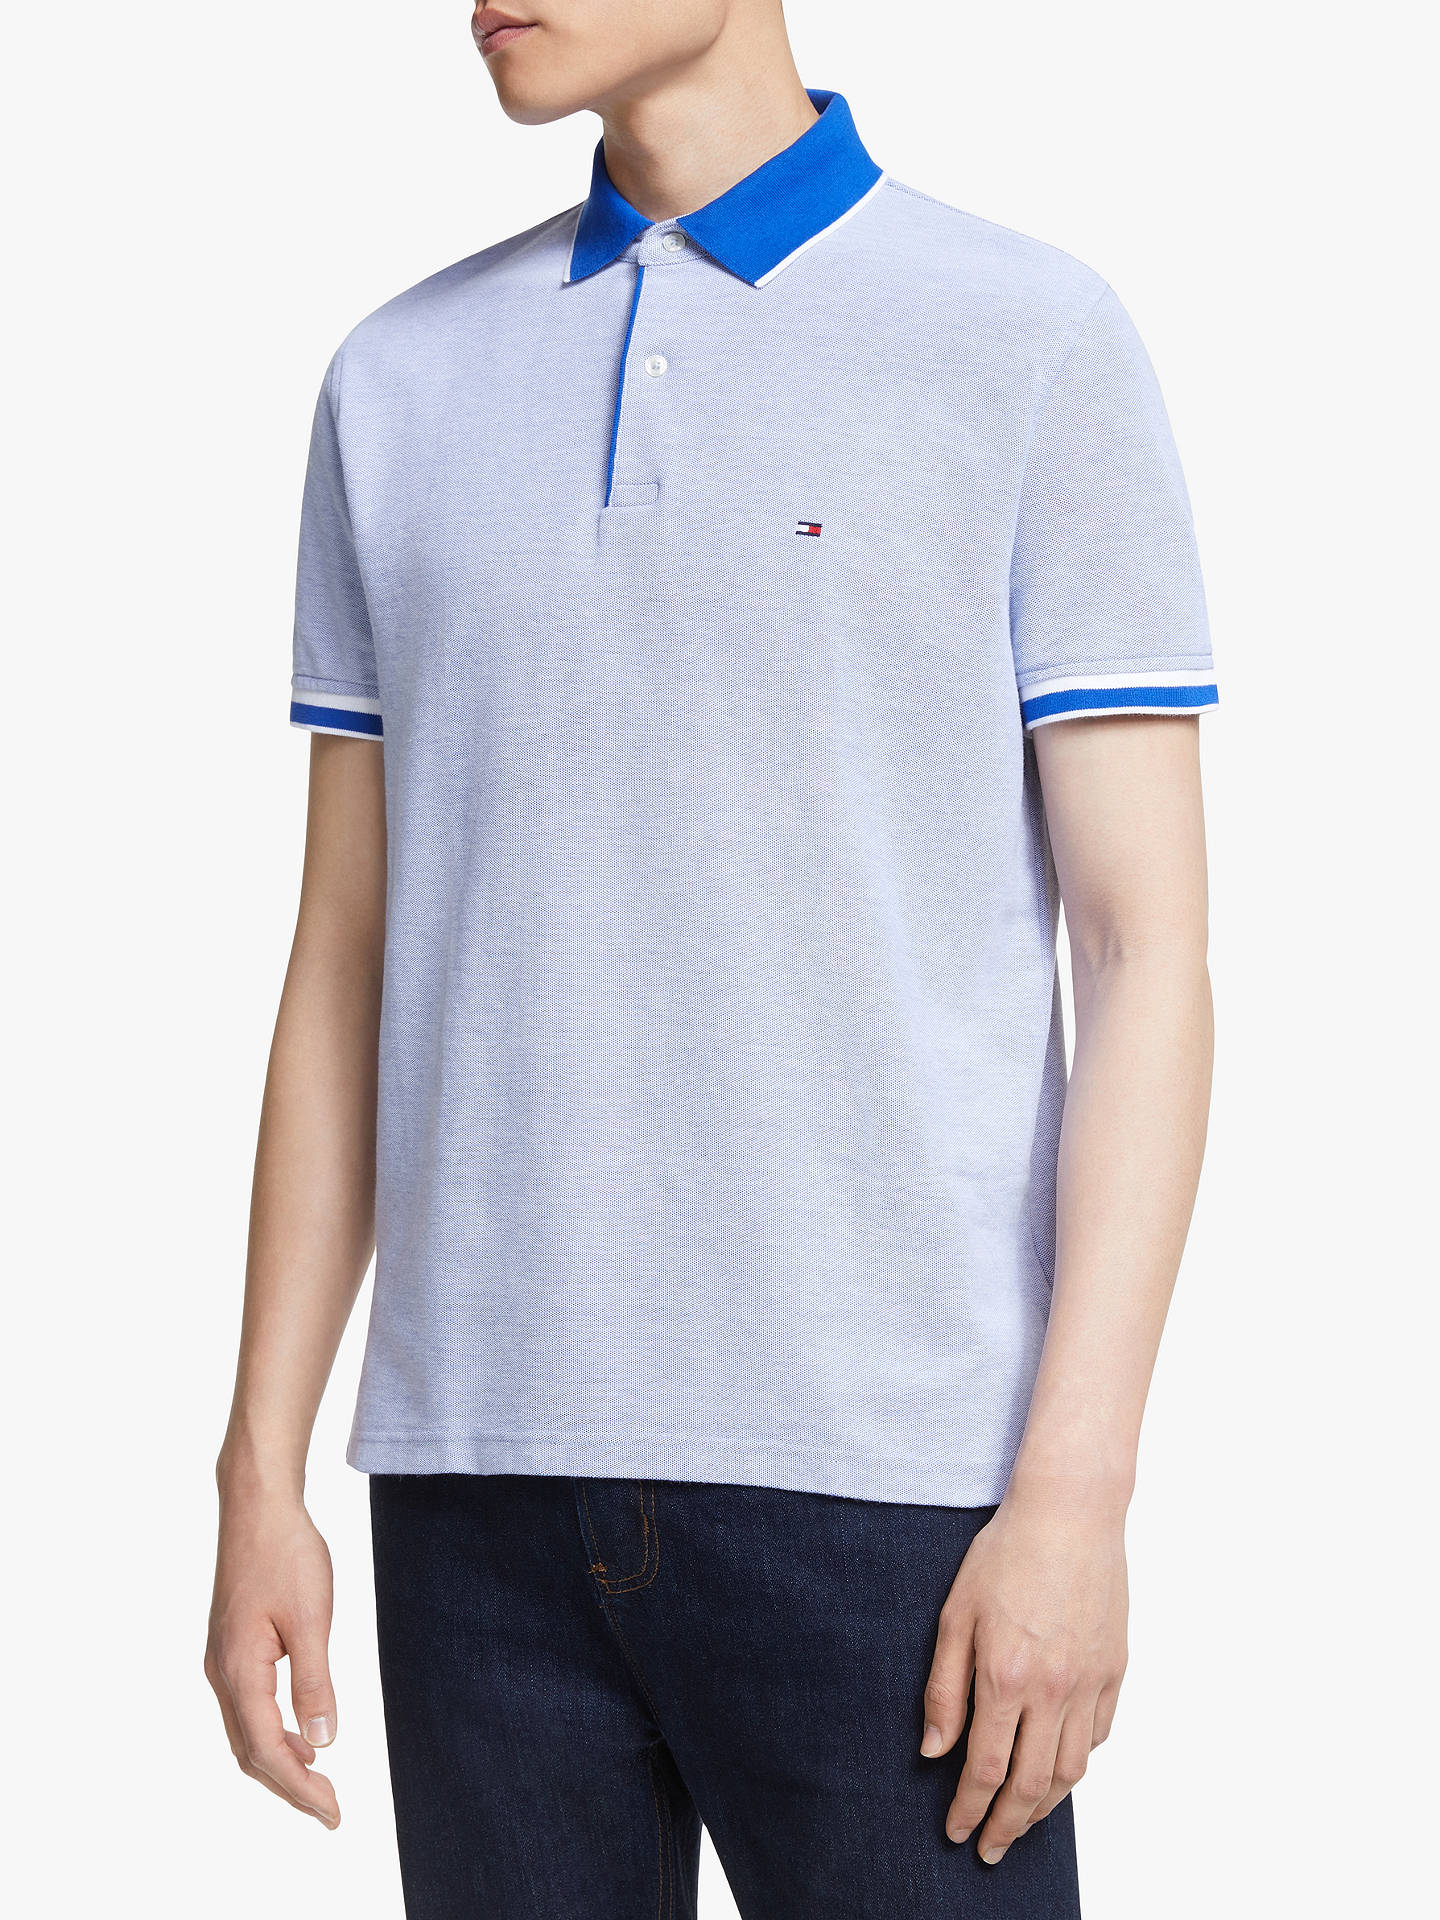 2a8ee45f6 Buy Tommy Hilfiger Slim Fit Oxford Polo Shirt